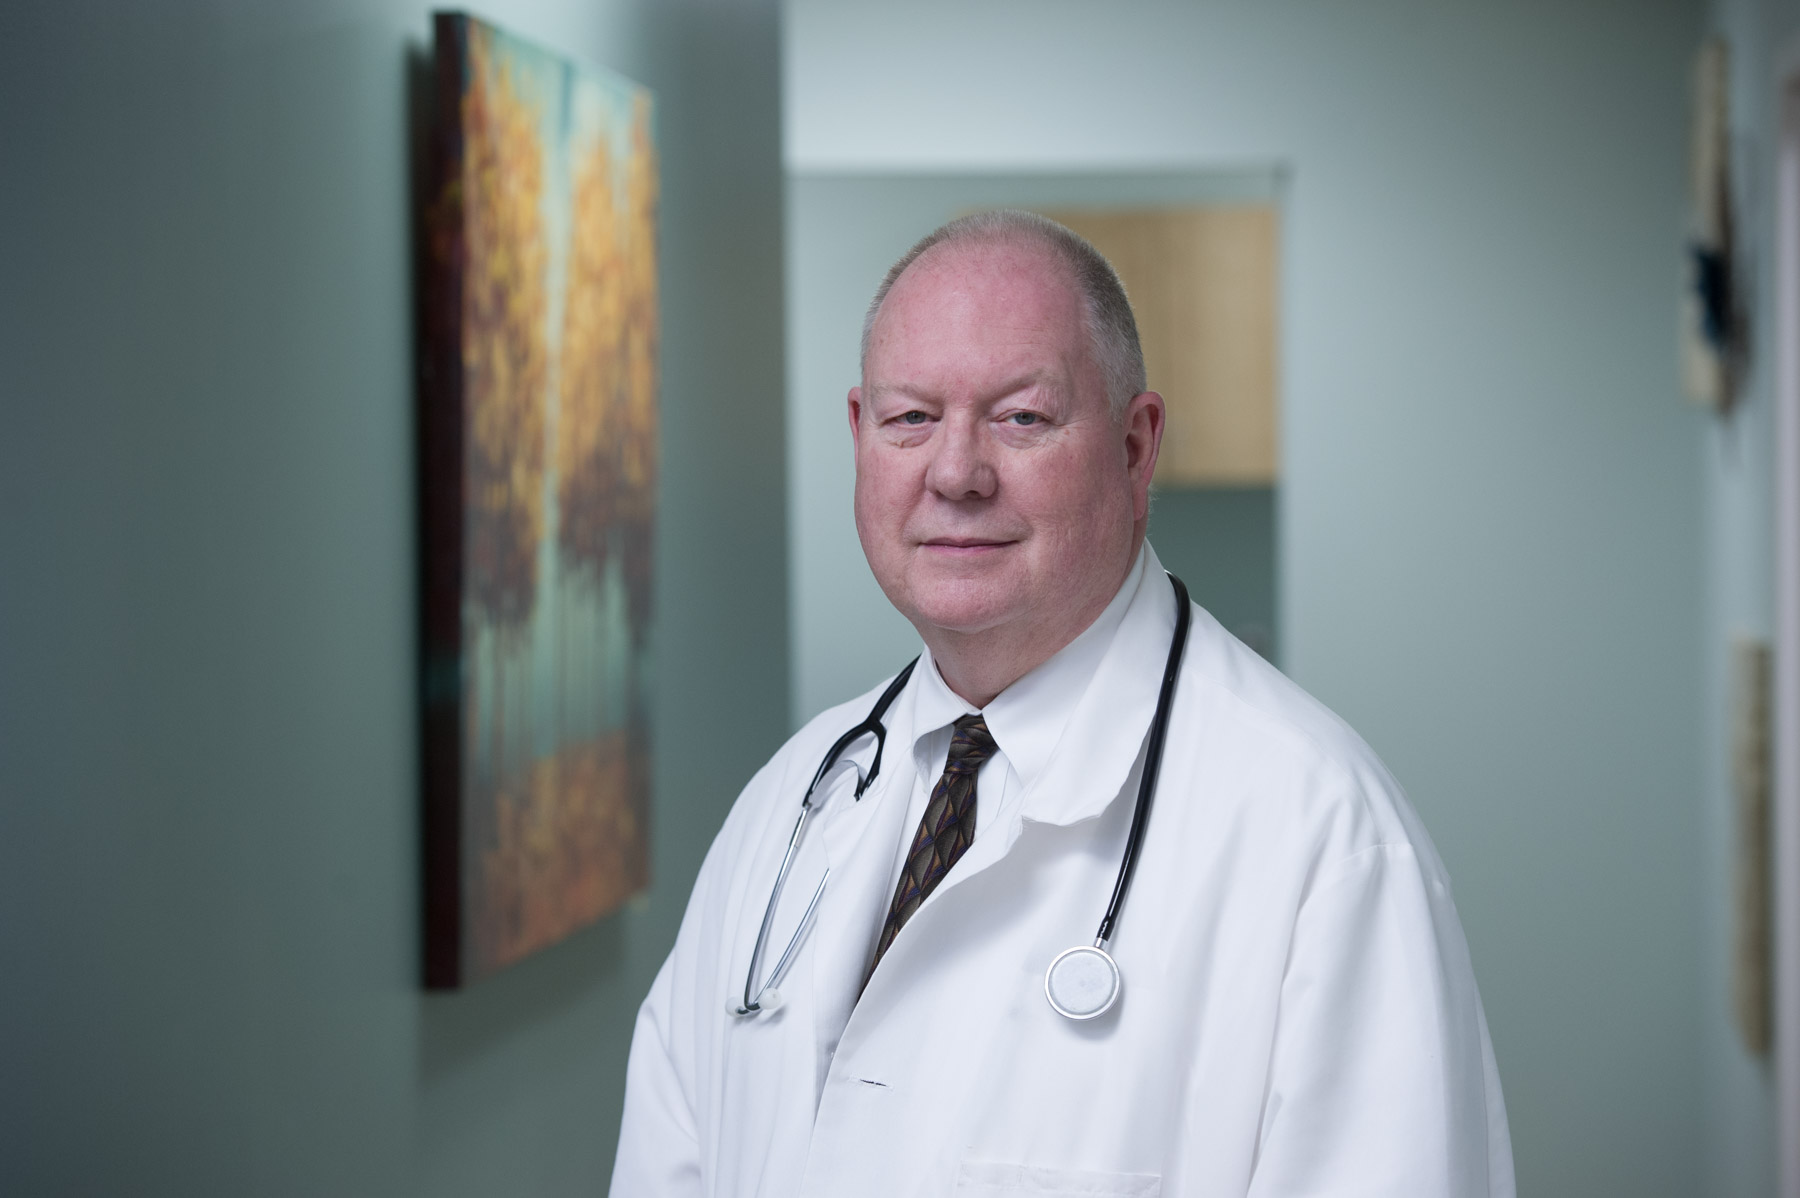 Dr. Dale Trombley of Anchorage Housecall Medicine